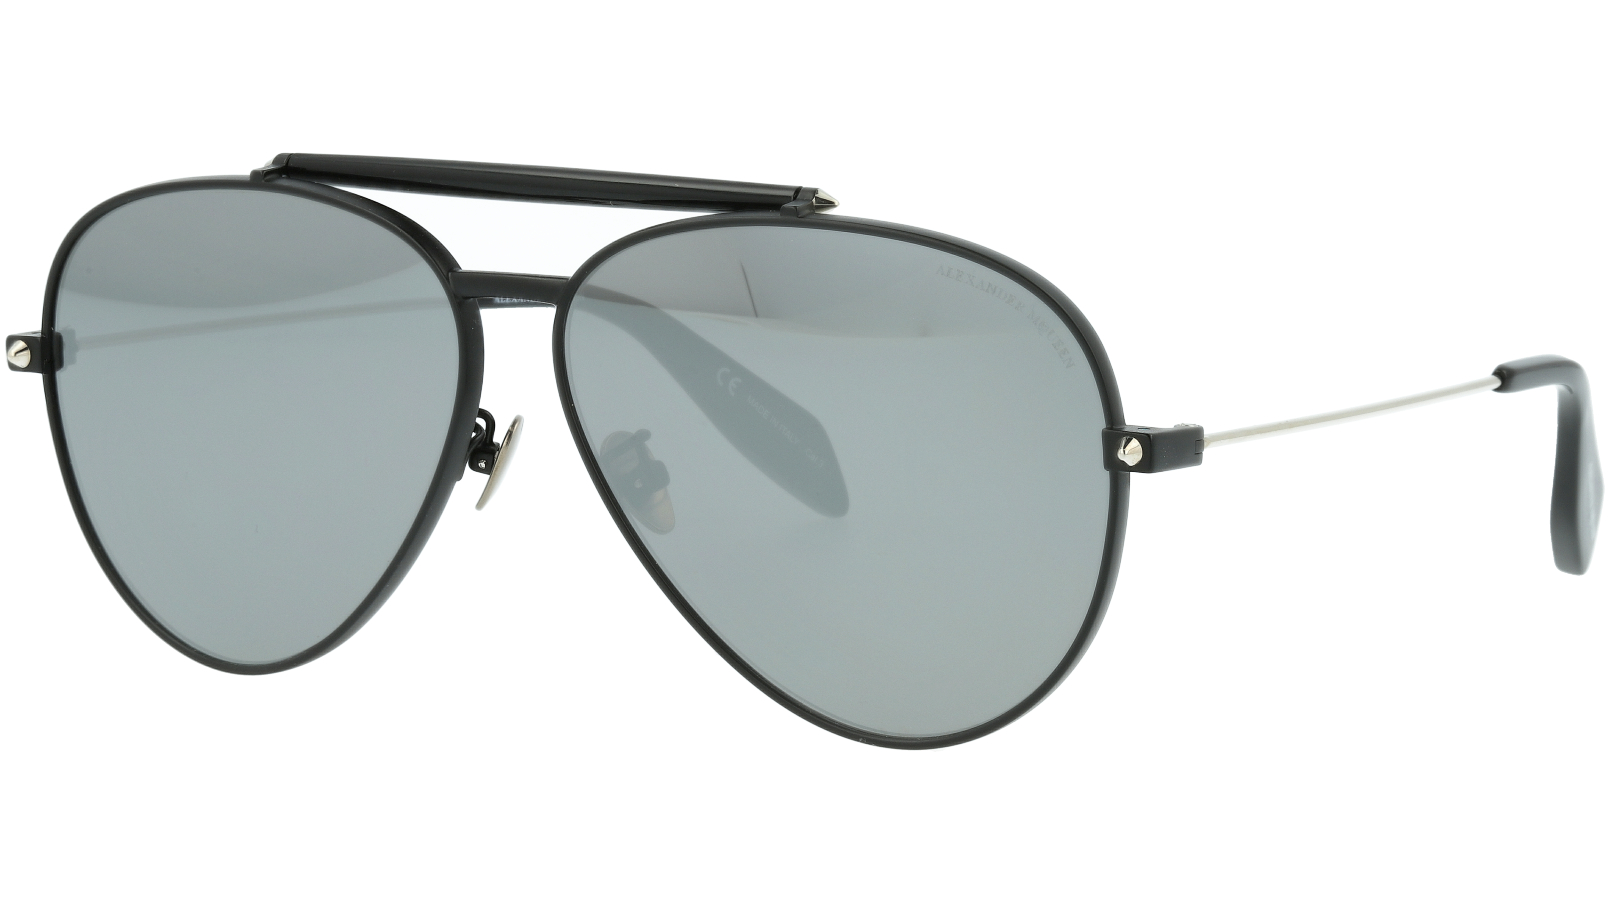 ALEXANDER MCQUEEN AM0057S 001 62 BLACK Sunglasses